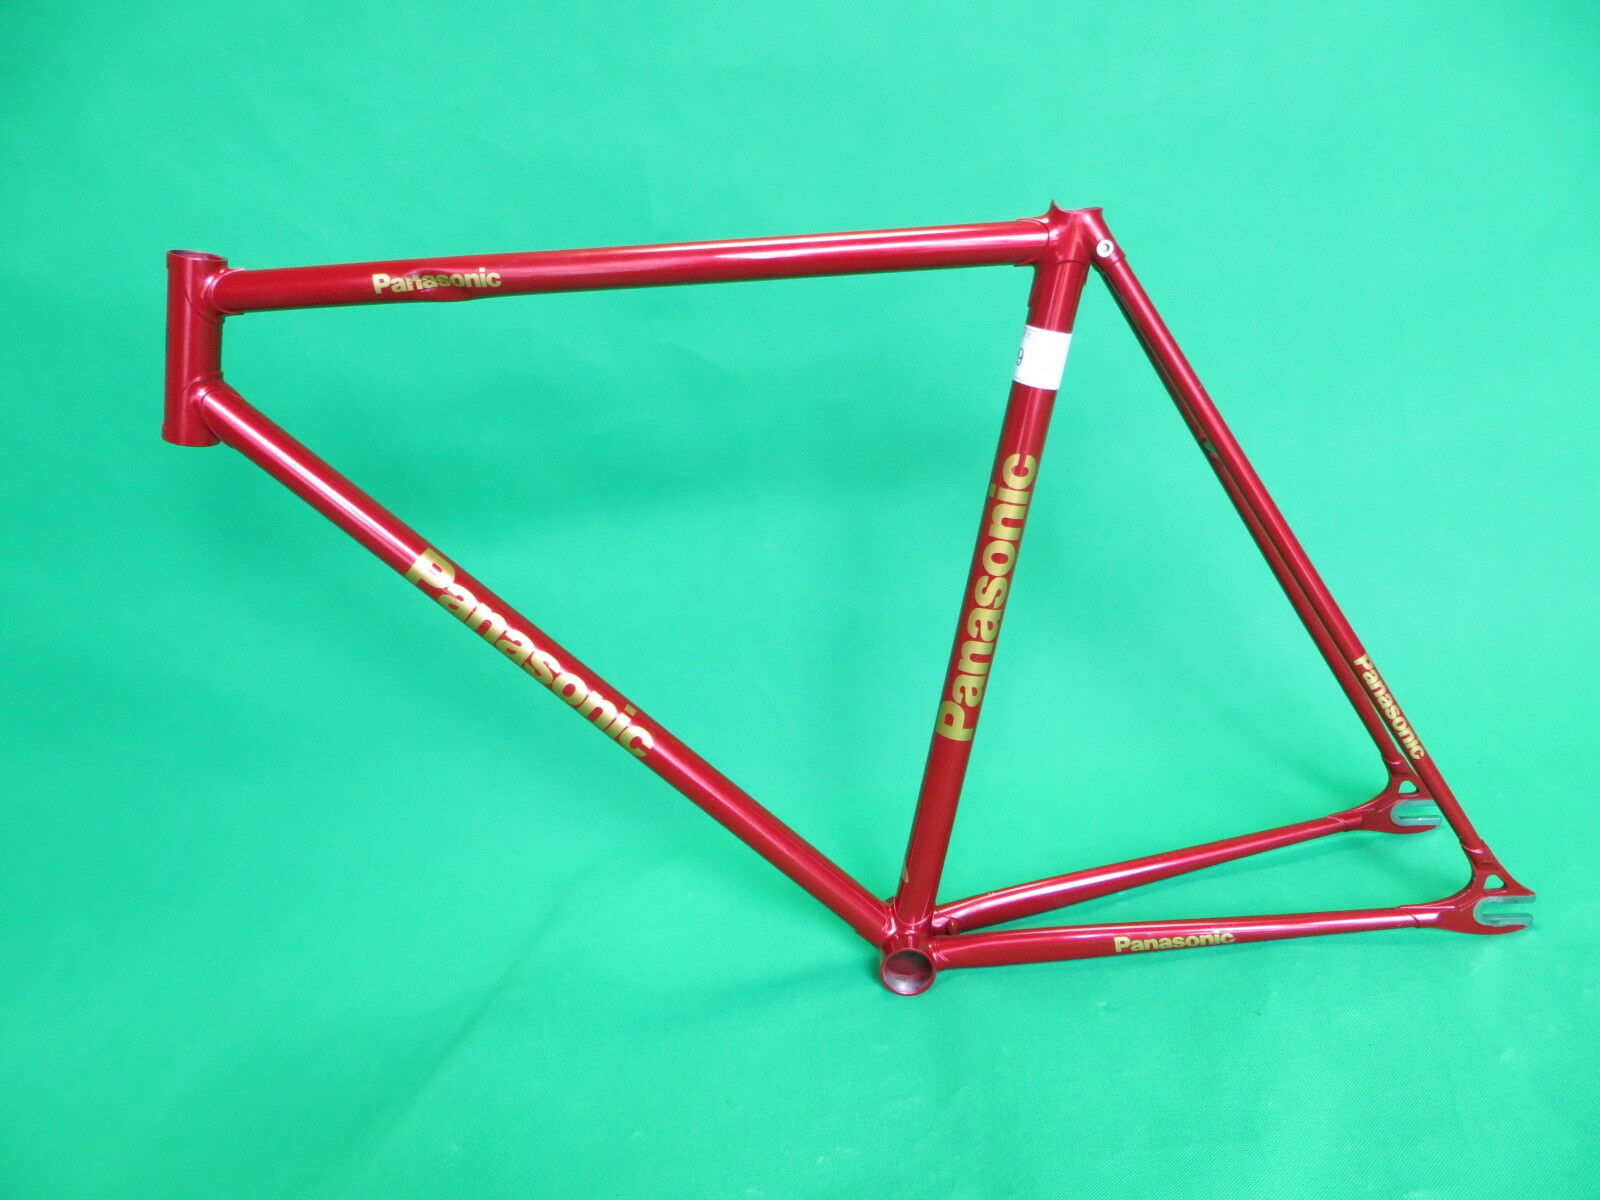 Panasonic NJS Keirin Pista Frame Track Bike NO FORK  Fixed Gear 52cm